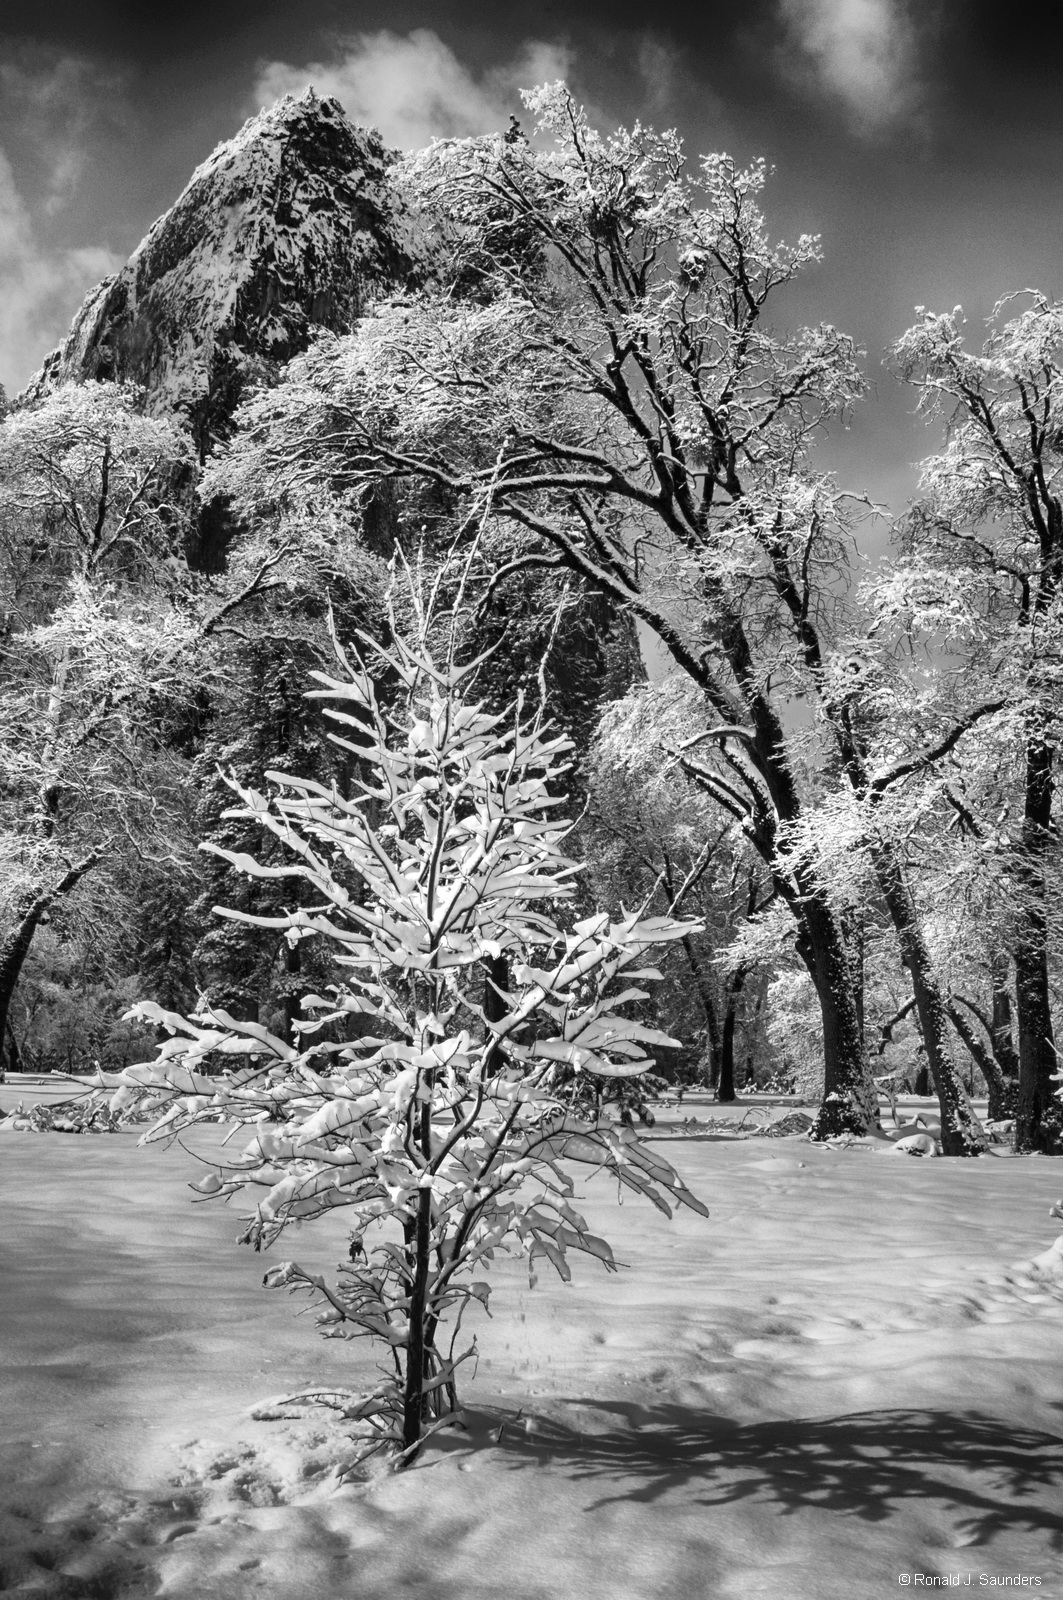 yosemite, black, white, ron, ronald, saunders, snow, winter,valley, view, landscape, fine art, keeble, shuchat, exhibition, clearing, weather, national, park, photo